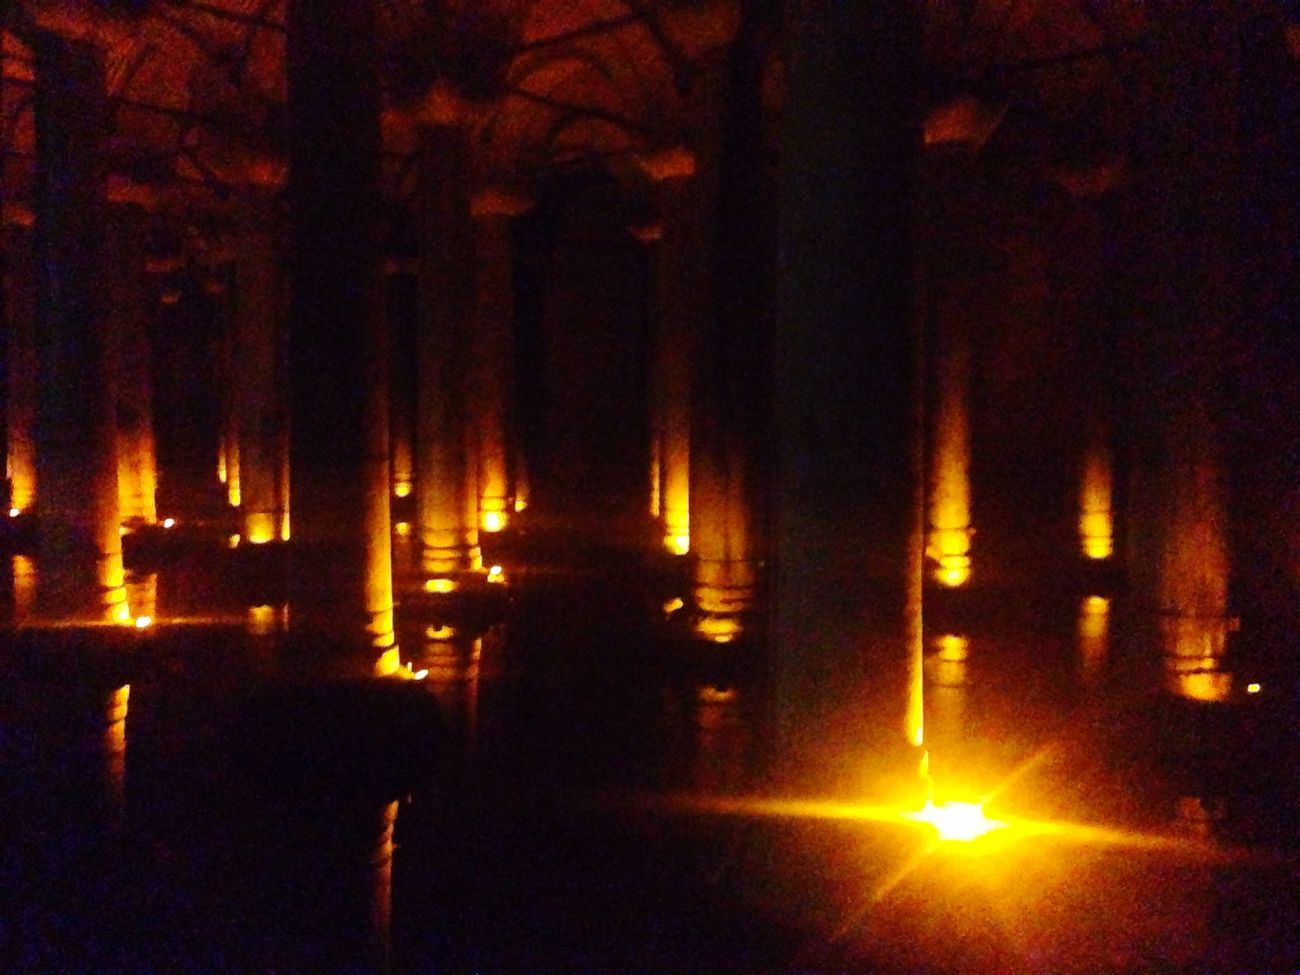 Yerebatan Sarnıcı Istanbul Yerebatansarnıcı Istanbul Turkey Yerebatancistern Basilica Basilikacistern Yerebatan Istanbuldayasam Eyem Best Shots Symmetryporn Symmetry_art Istanbullovers Istanbul Turkey YerebatanSarnici Magic Moment Of Silence MagicMoments Magical Moments Magical Lights Enjoying This Moment Of Inspiration Good Vibes ✌ Magic Hour